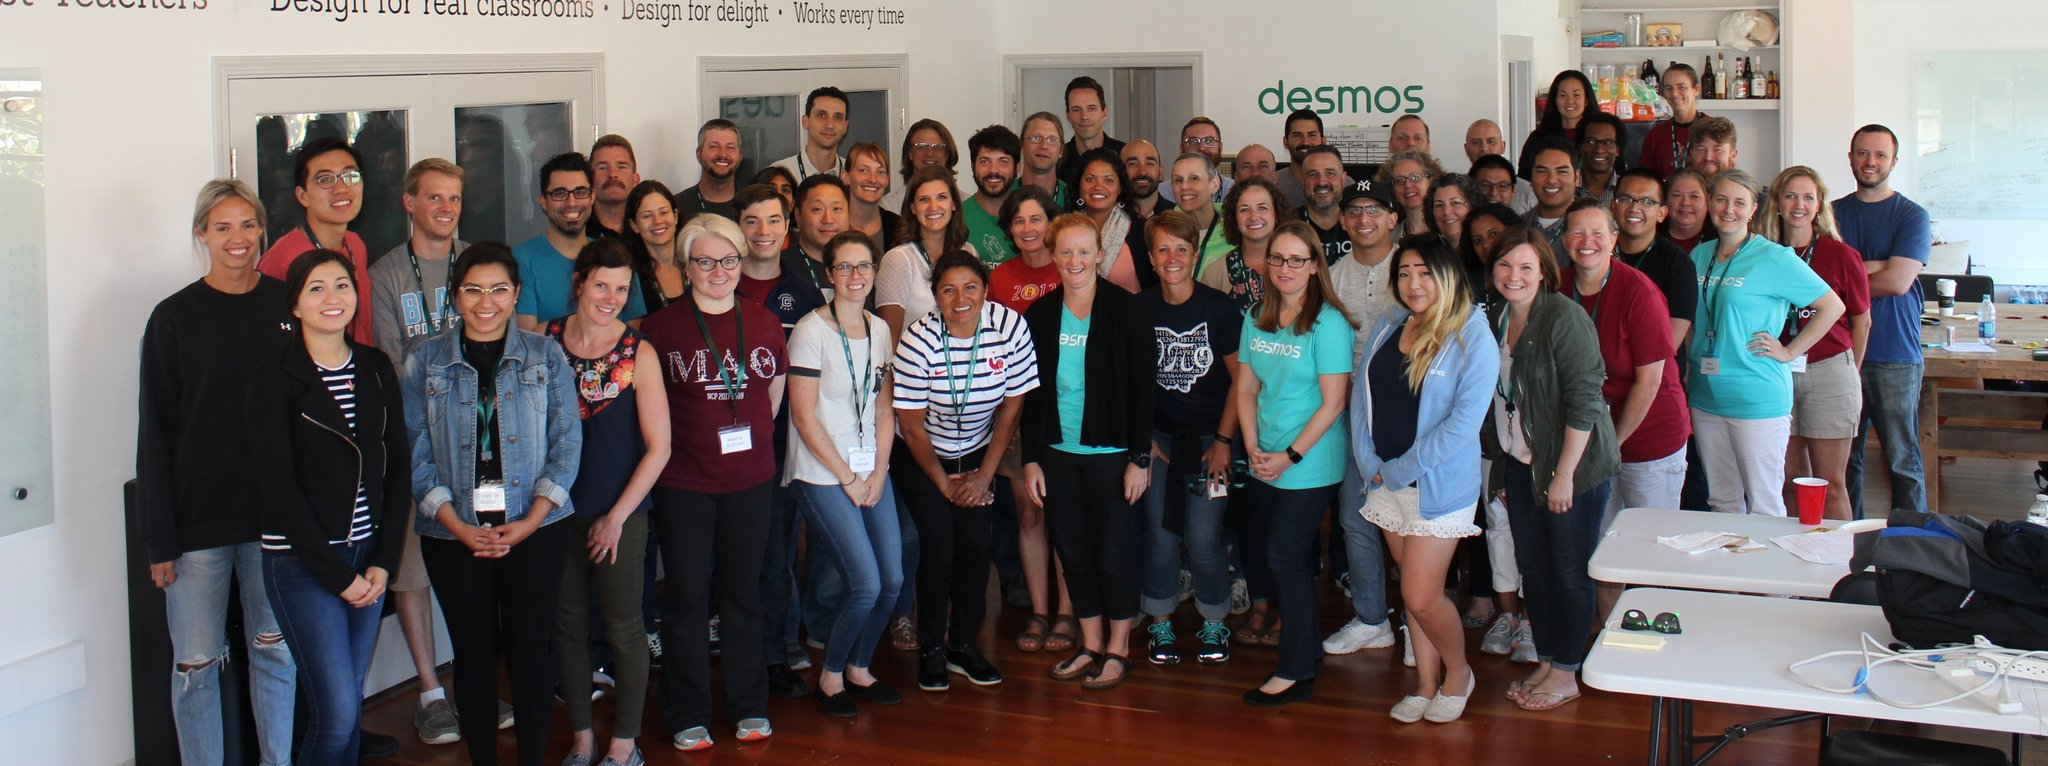 Group portrait of Desmos Fellows and staff at last year's Fellows weekend